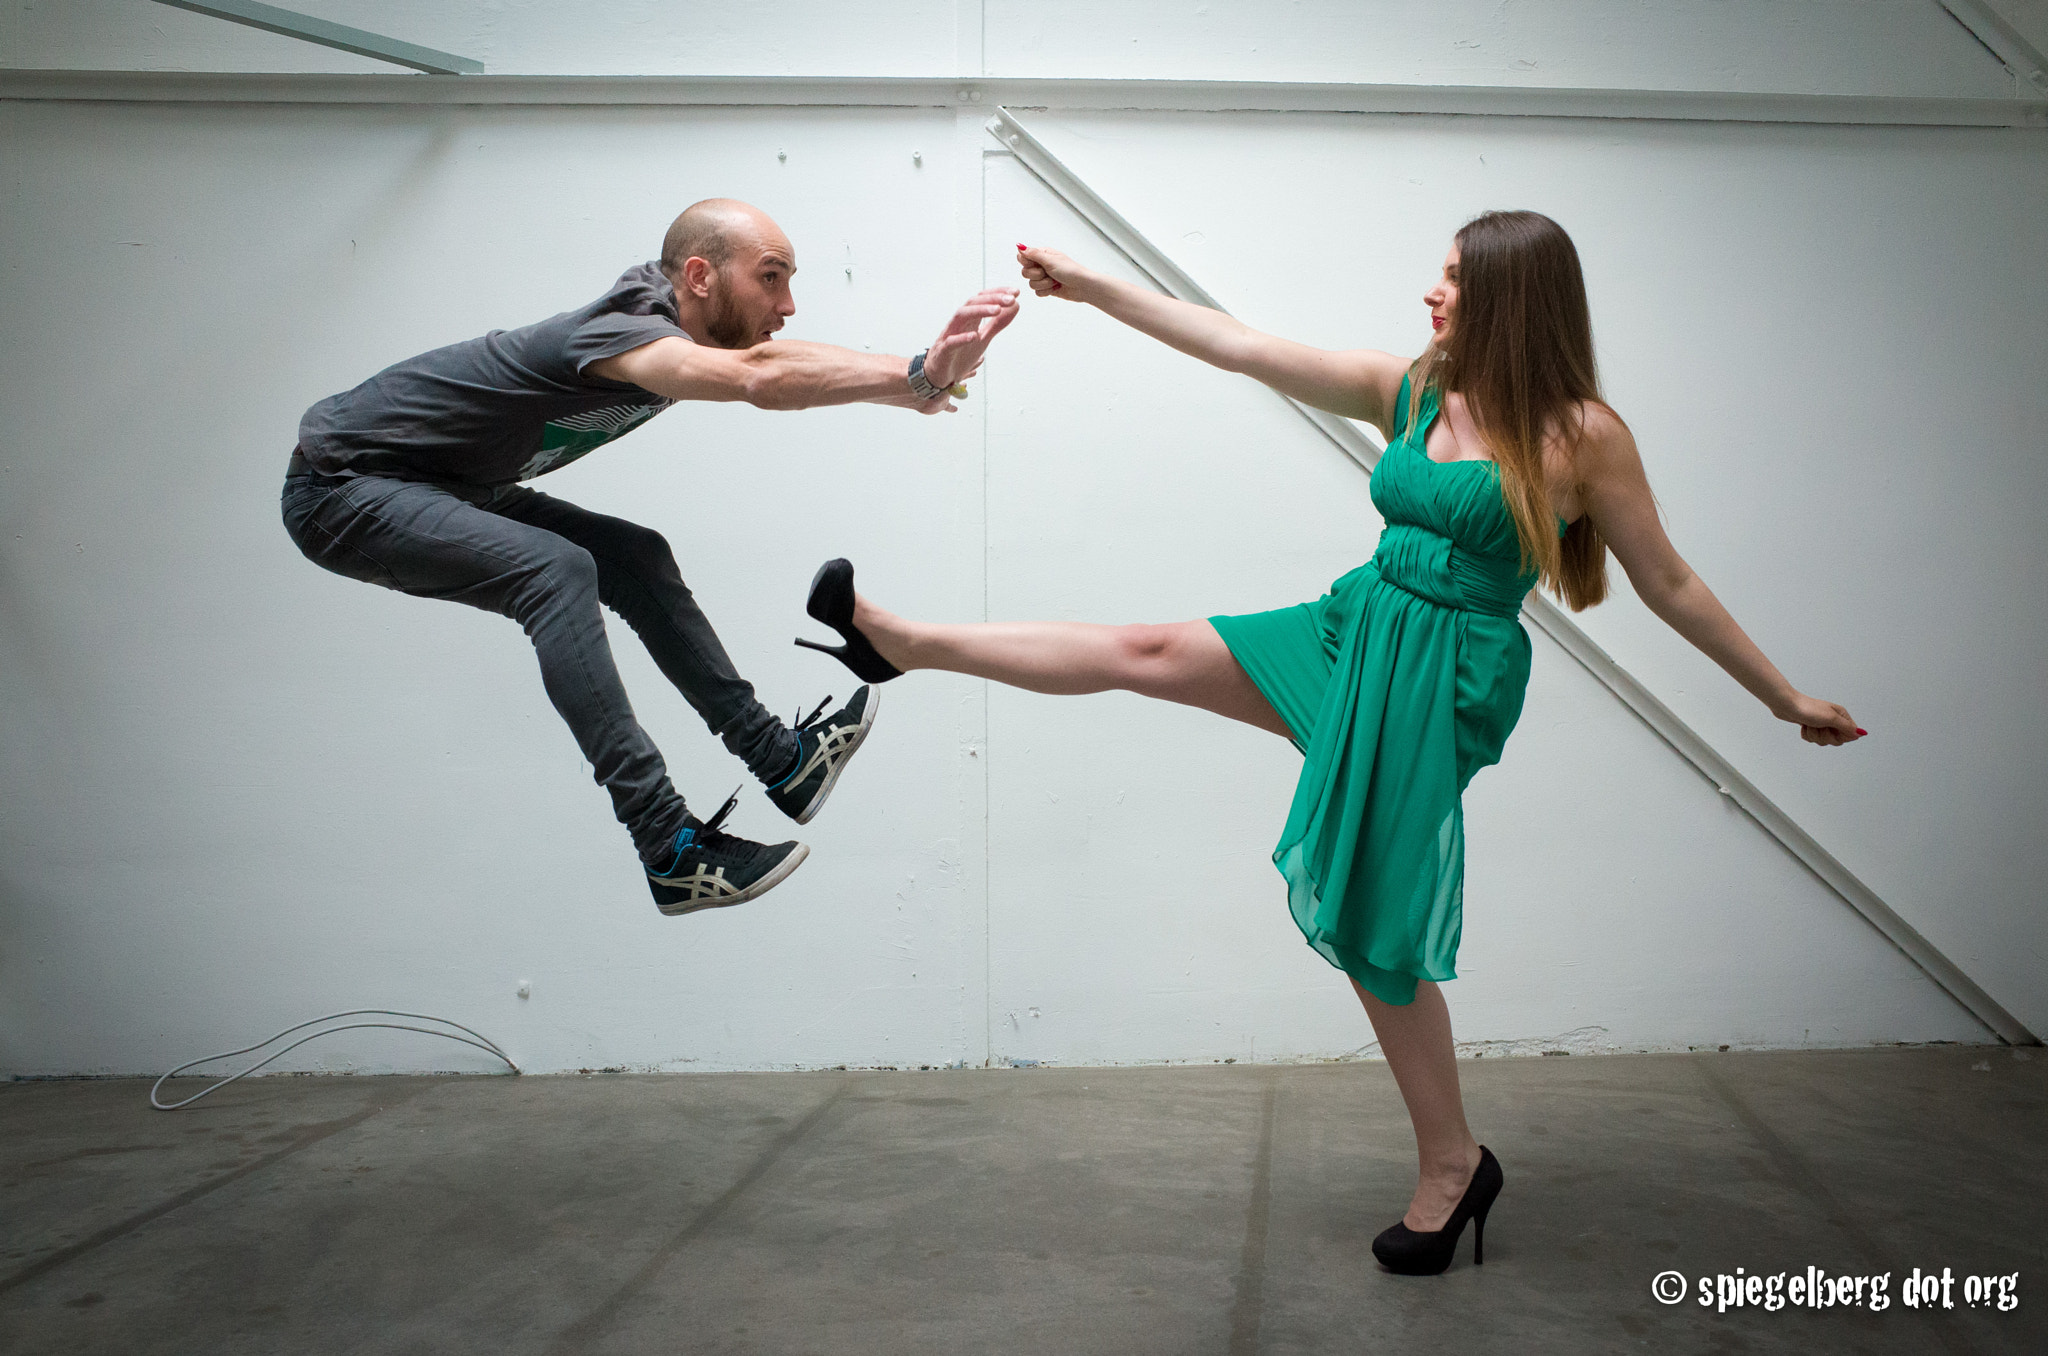 Photograph Kick it like Laura by Stephan Spiegelberg on 500px